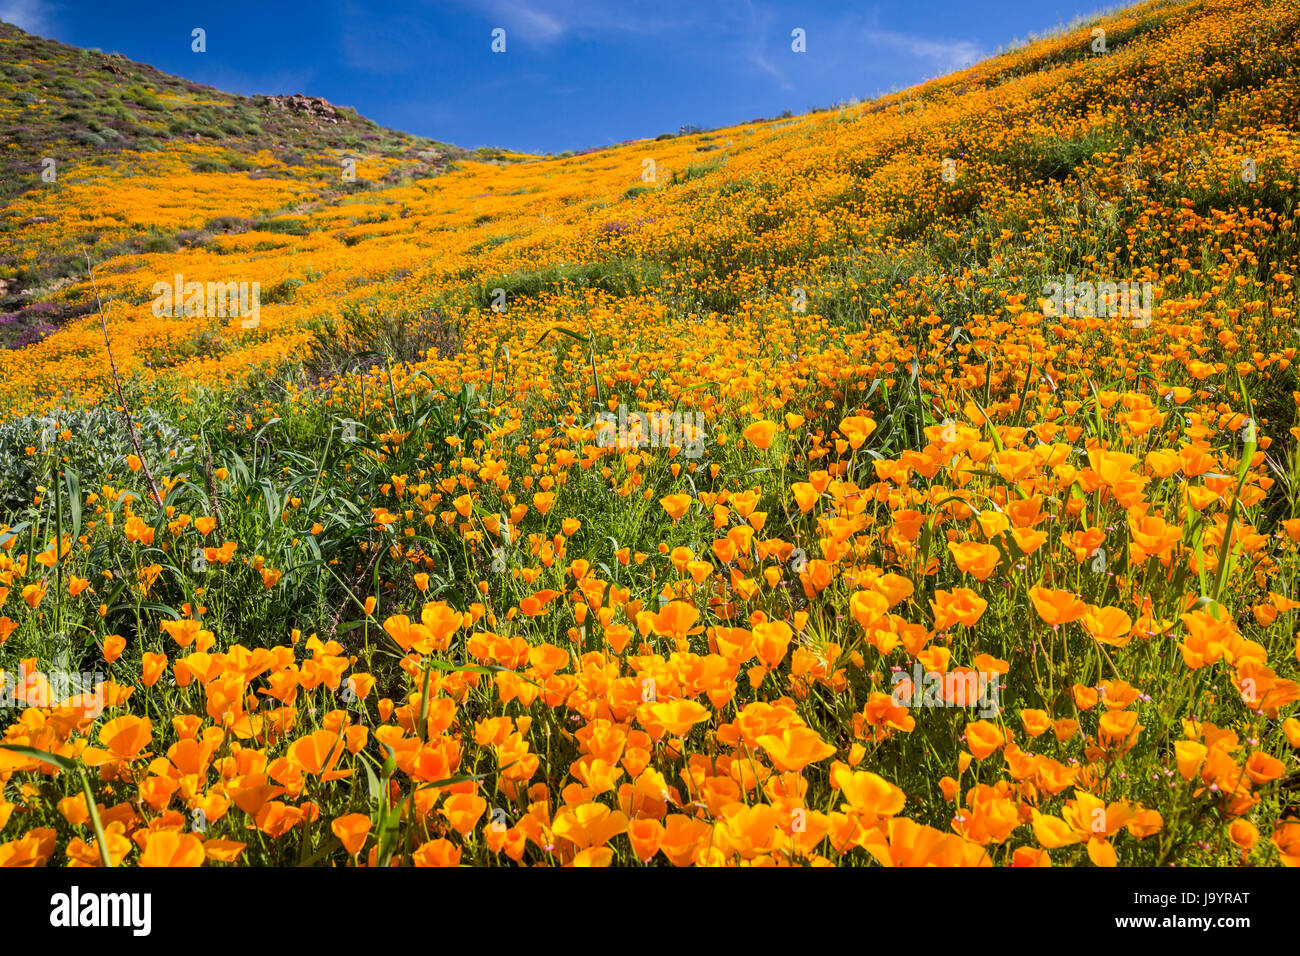 The spring poppy fields in Walker Canyon near Lake Elsinore, California, USA. - Stock Image